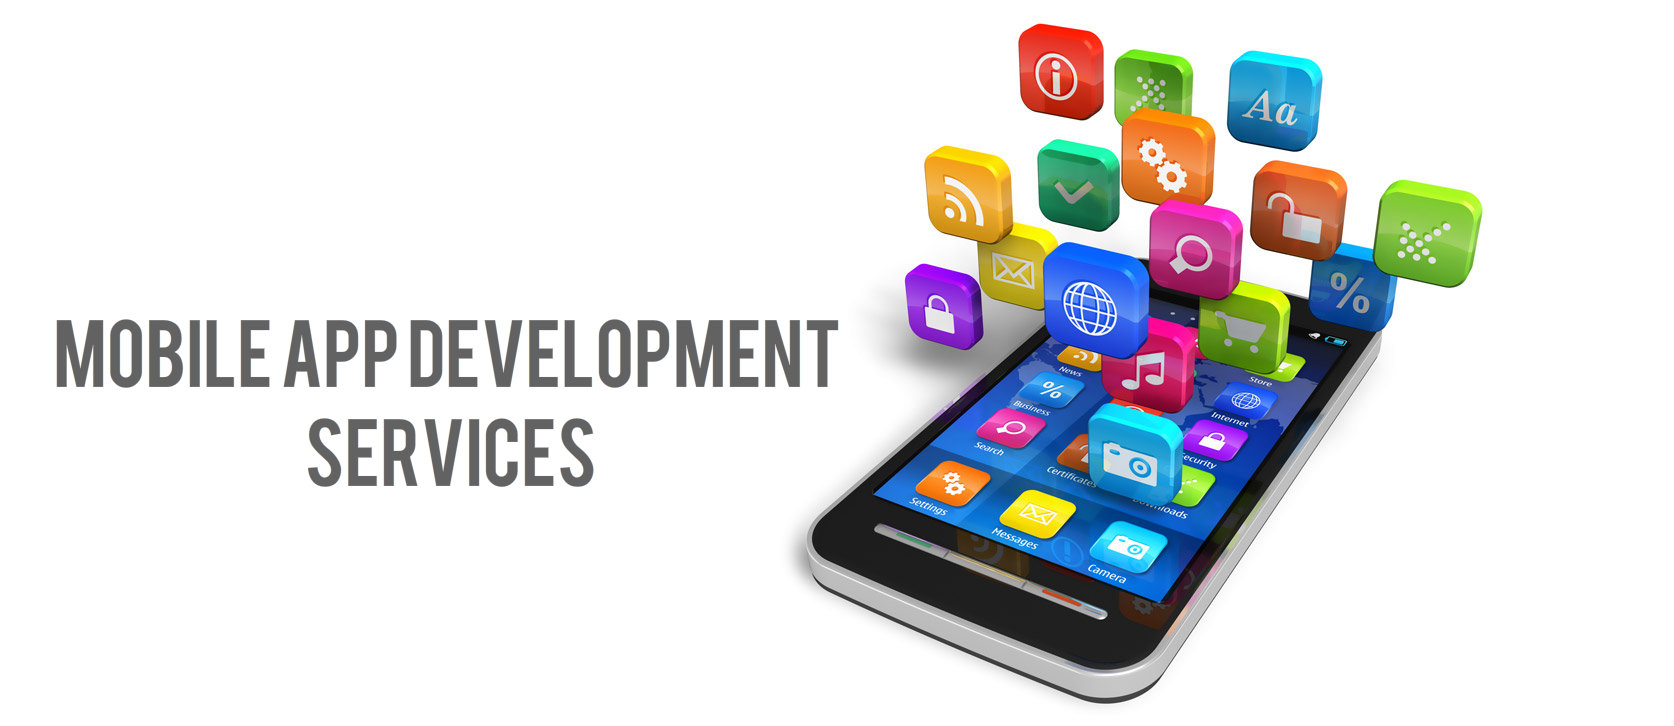 Top 7 personality traits a skilled mobile app developer should possess